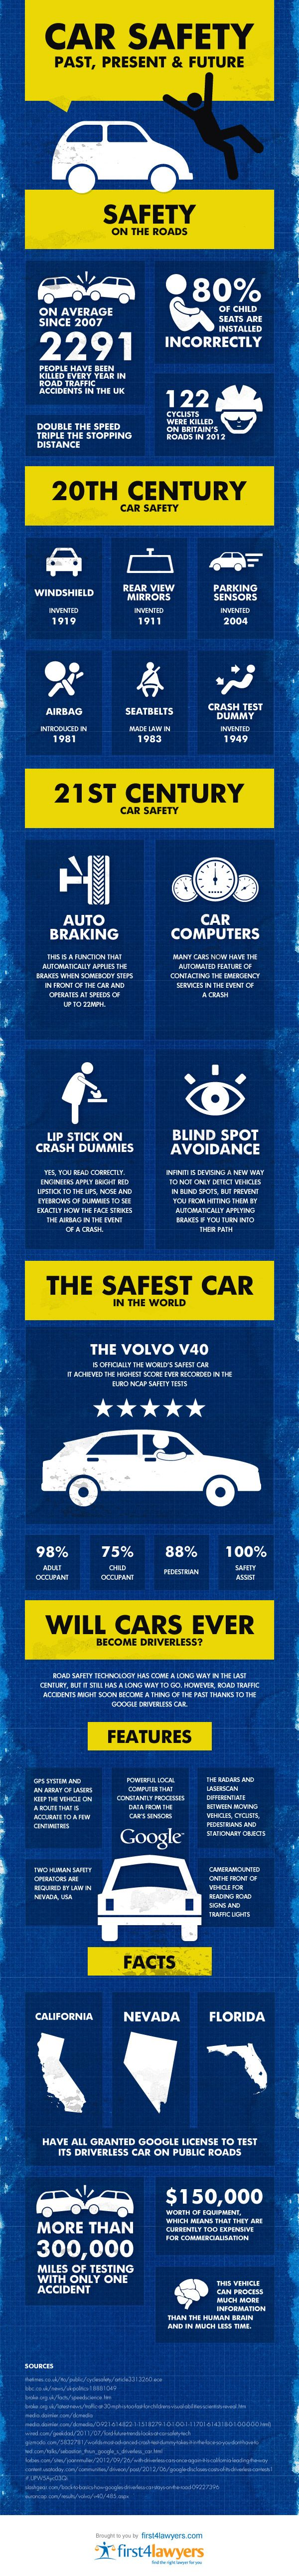 Car colour affects road safety - Car Safety Past Present Future